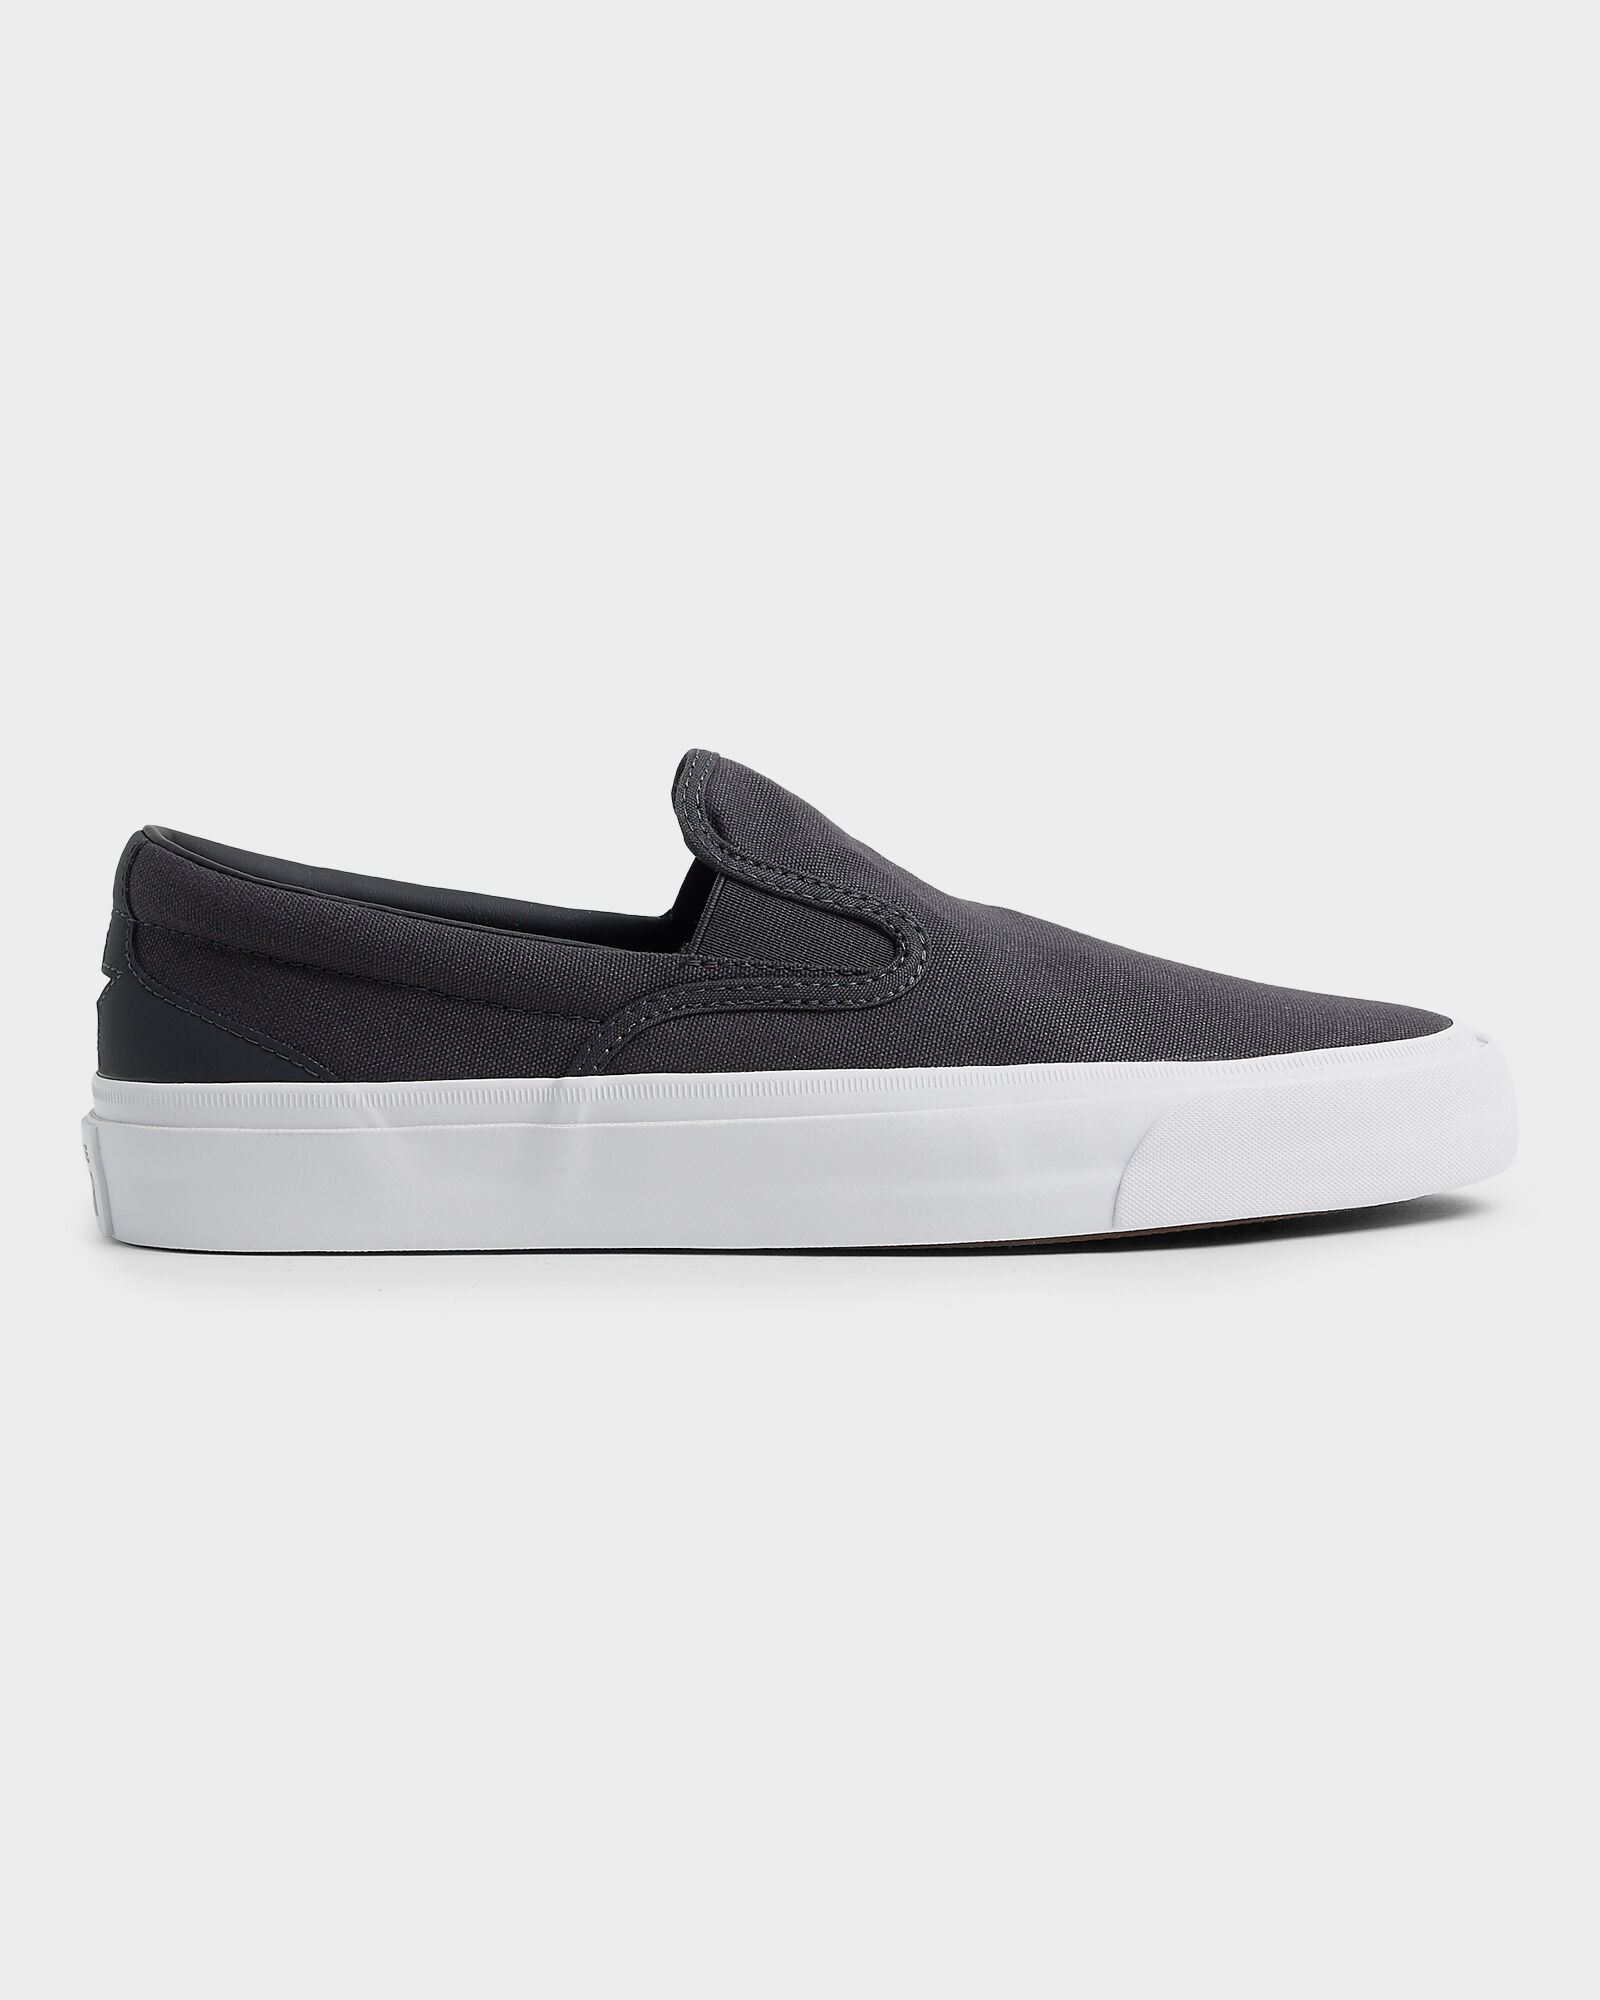 Almost Blackwhite ONE STAR CC SLIP ON SHOE | Surf, Dive 'N' Ski